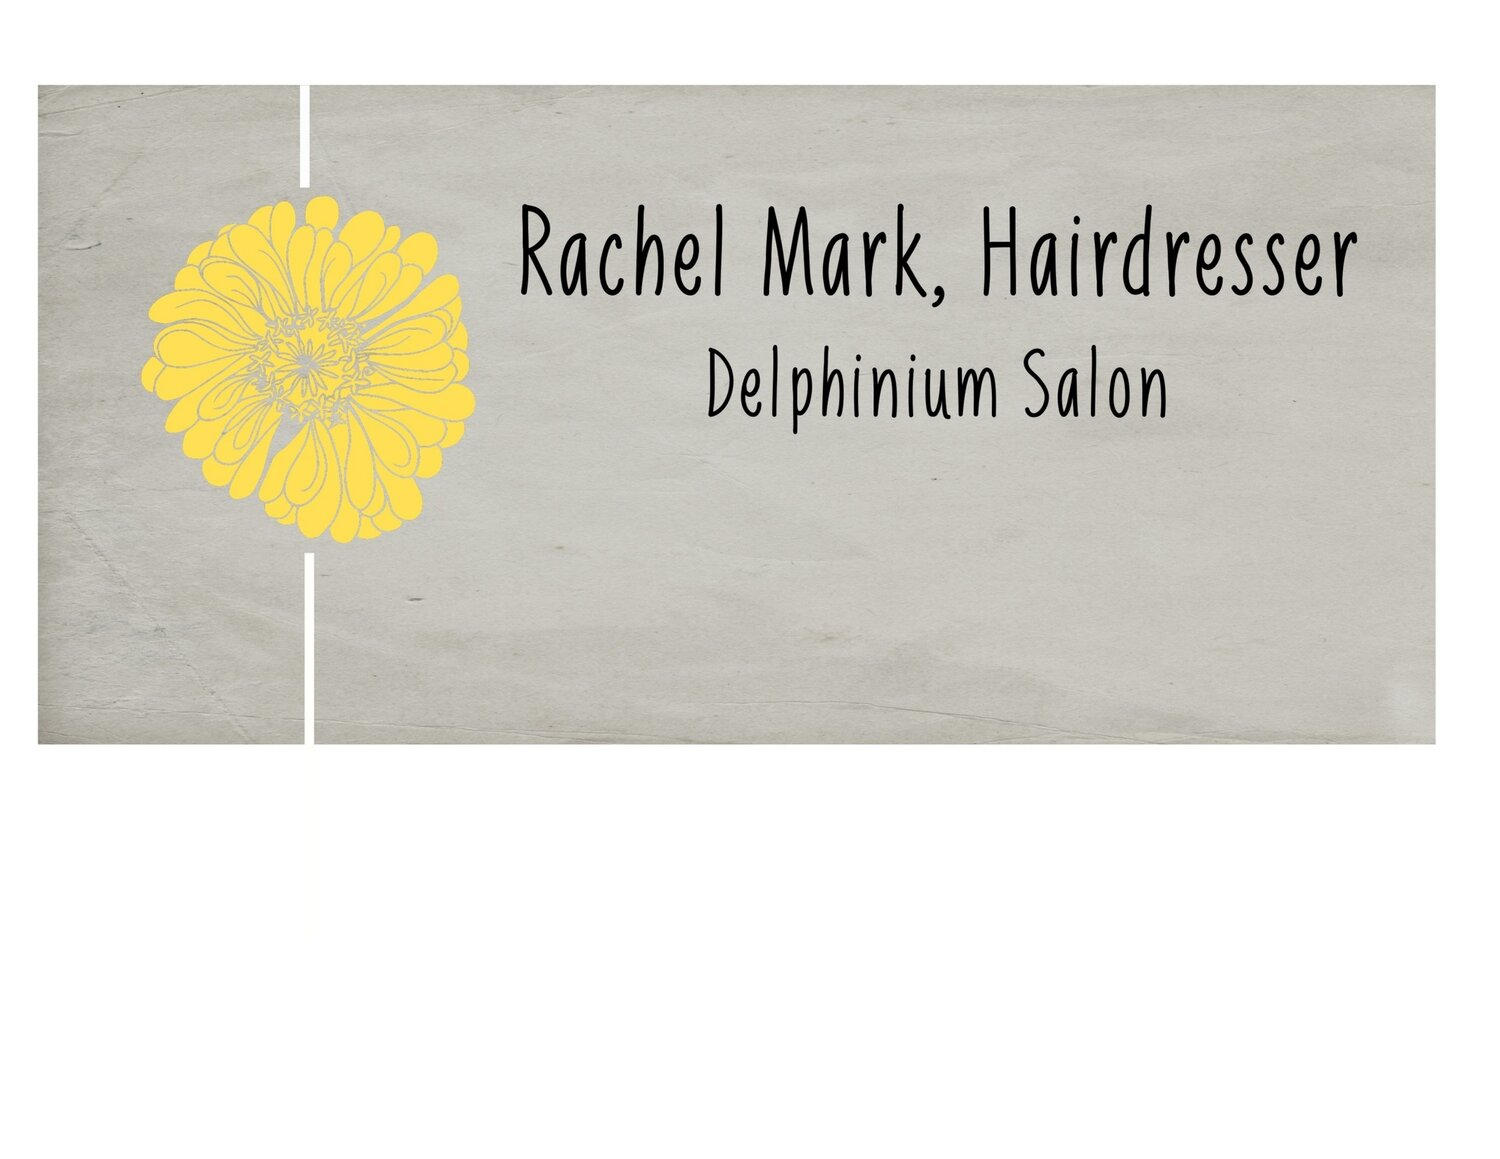 Rachel Mark Hairdresser, Delphinium salon